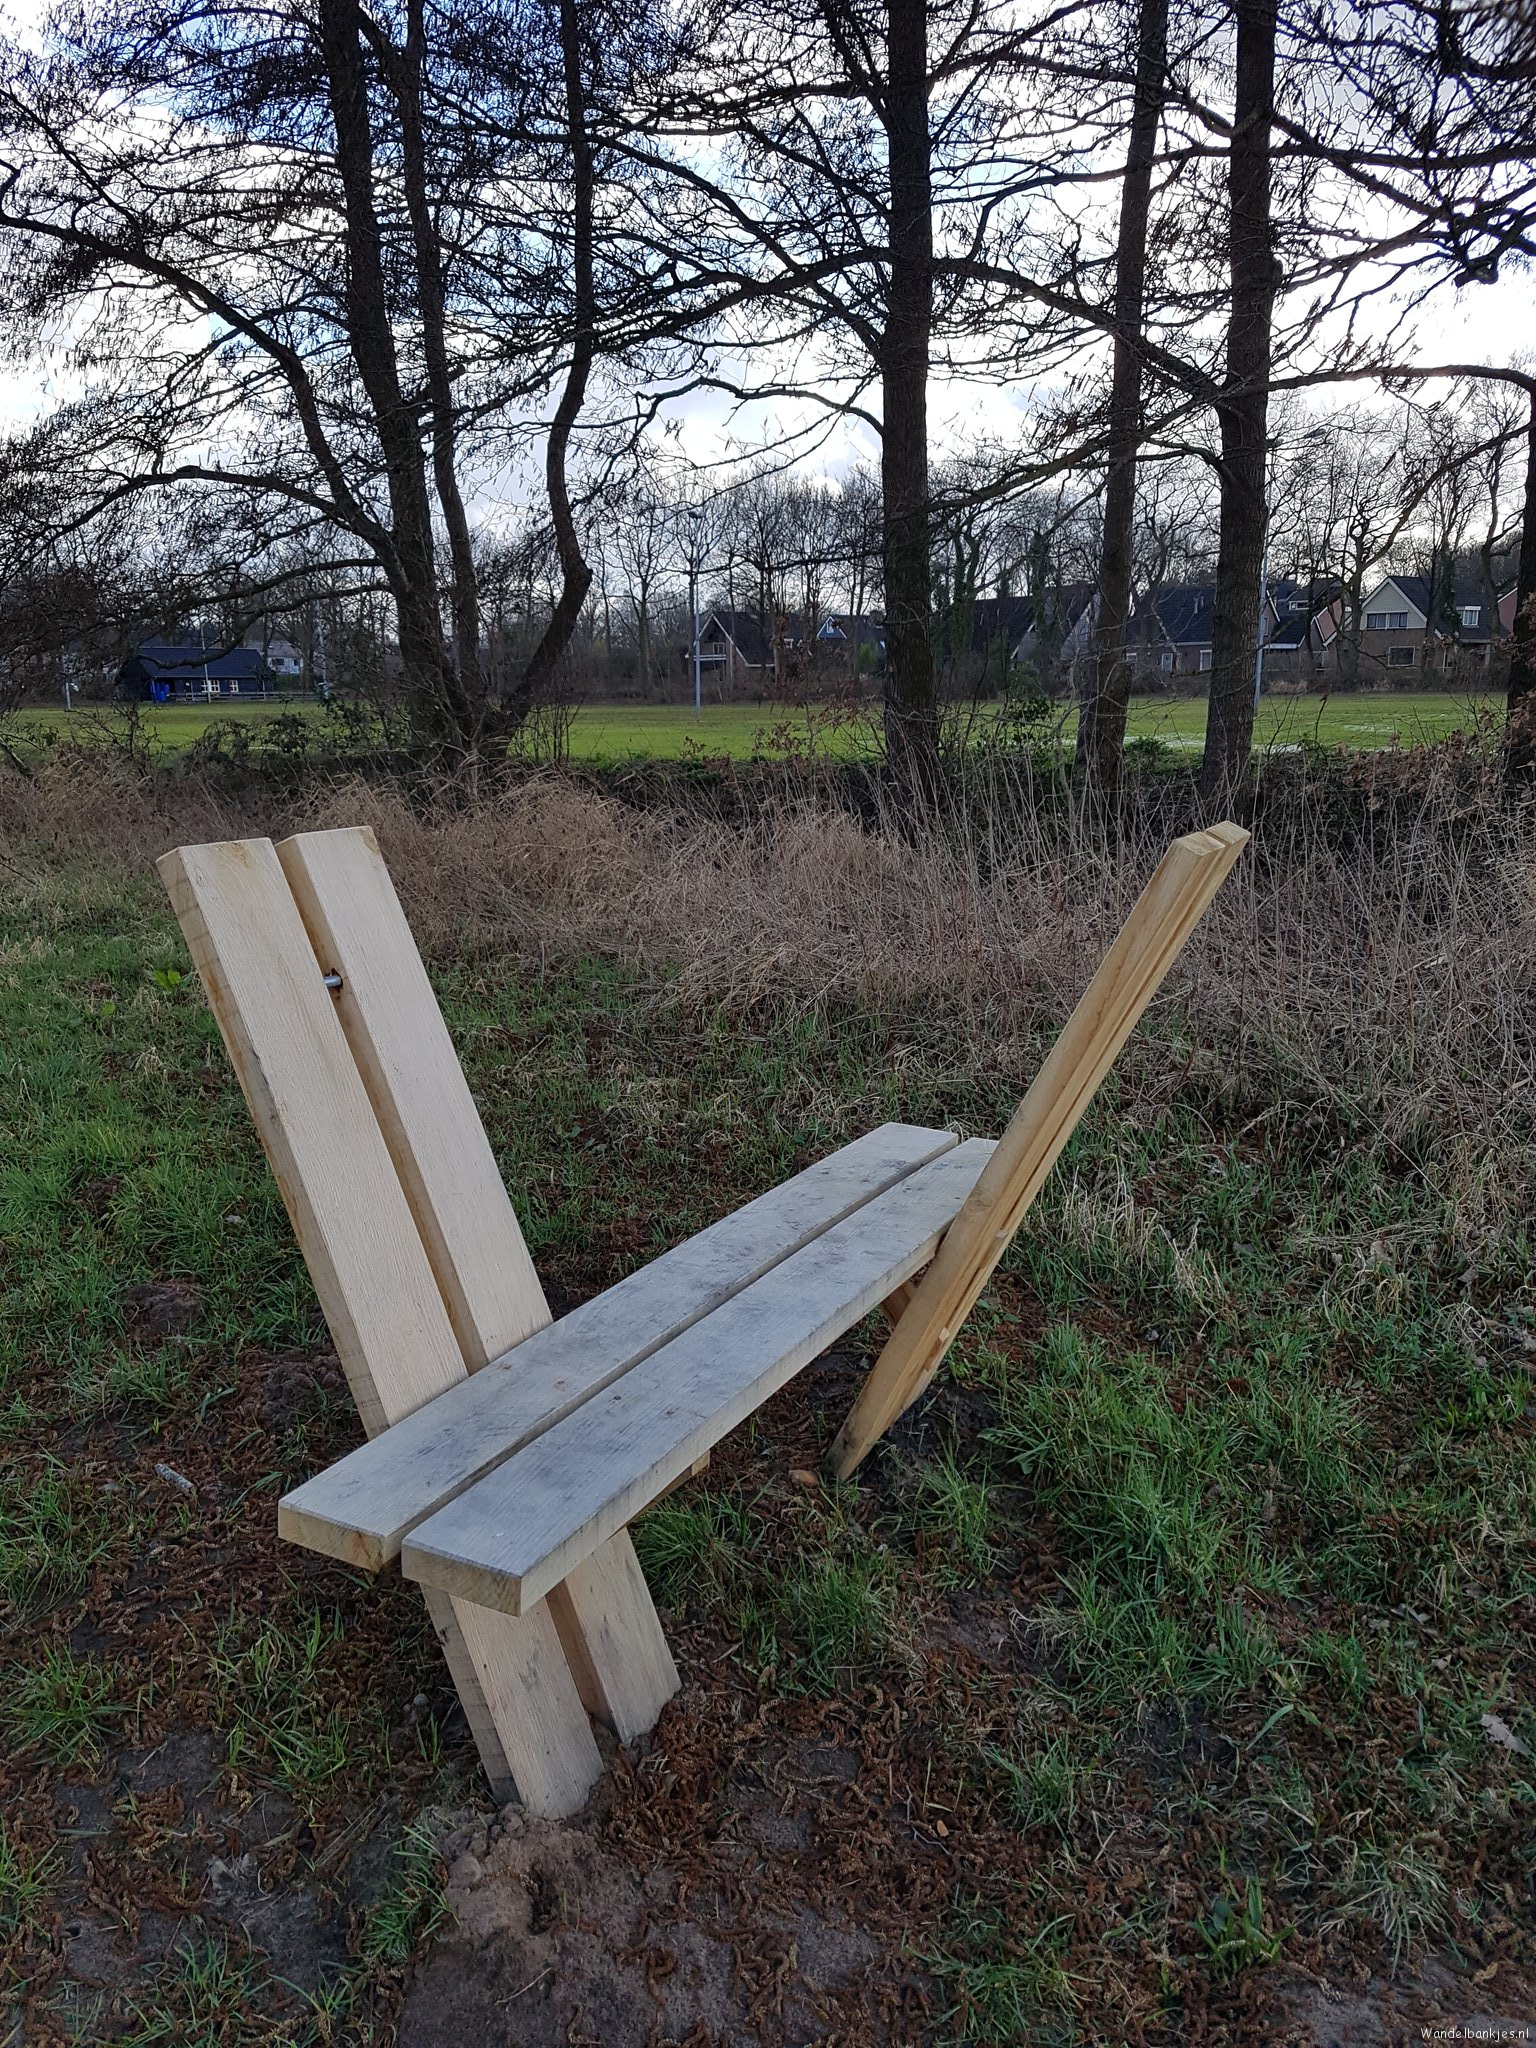 rt-gertdewit-walking benches-in-zweeloo-https-t-co-jkakjbtnsb